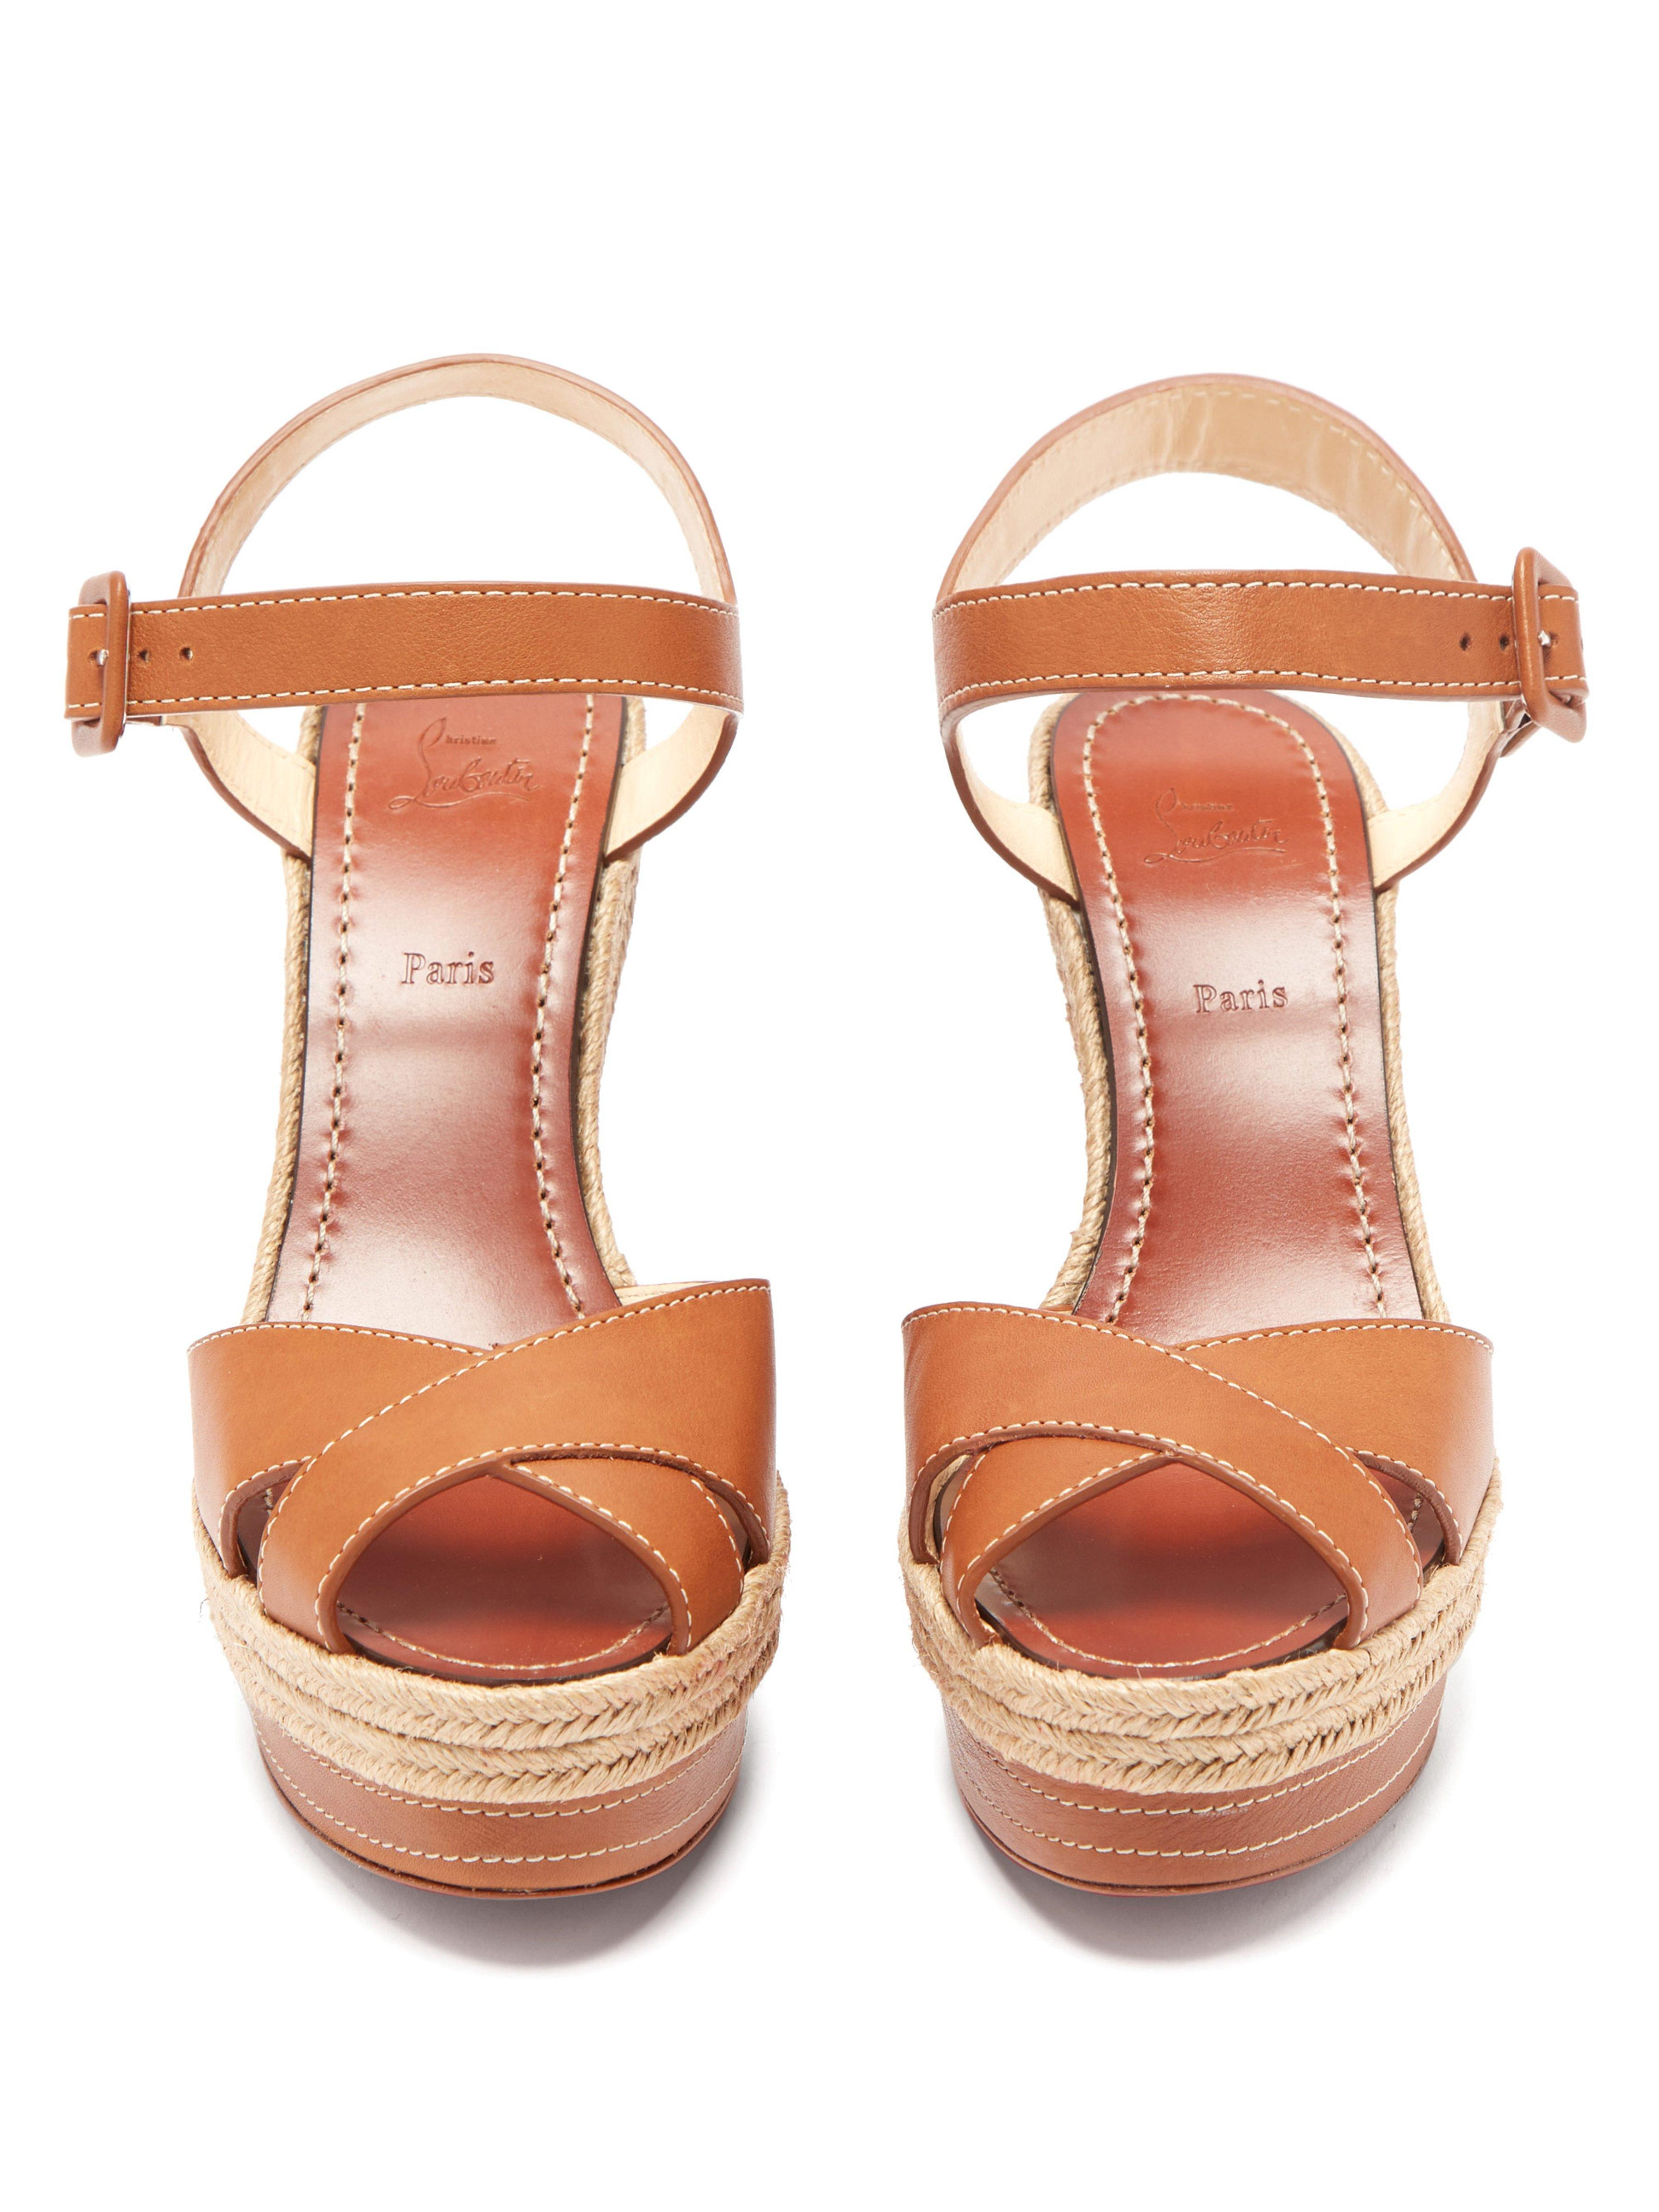 47111ebb275 Christian Louboutin Almeria 120 Jute Trim Leather Wedge Sandals in ...